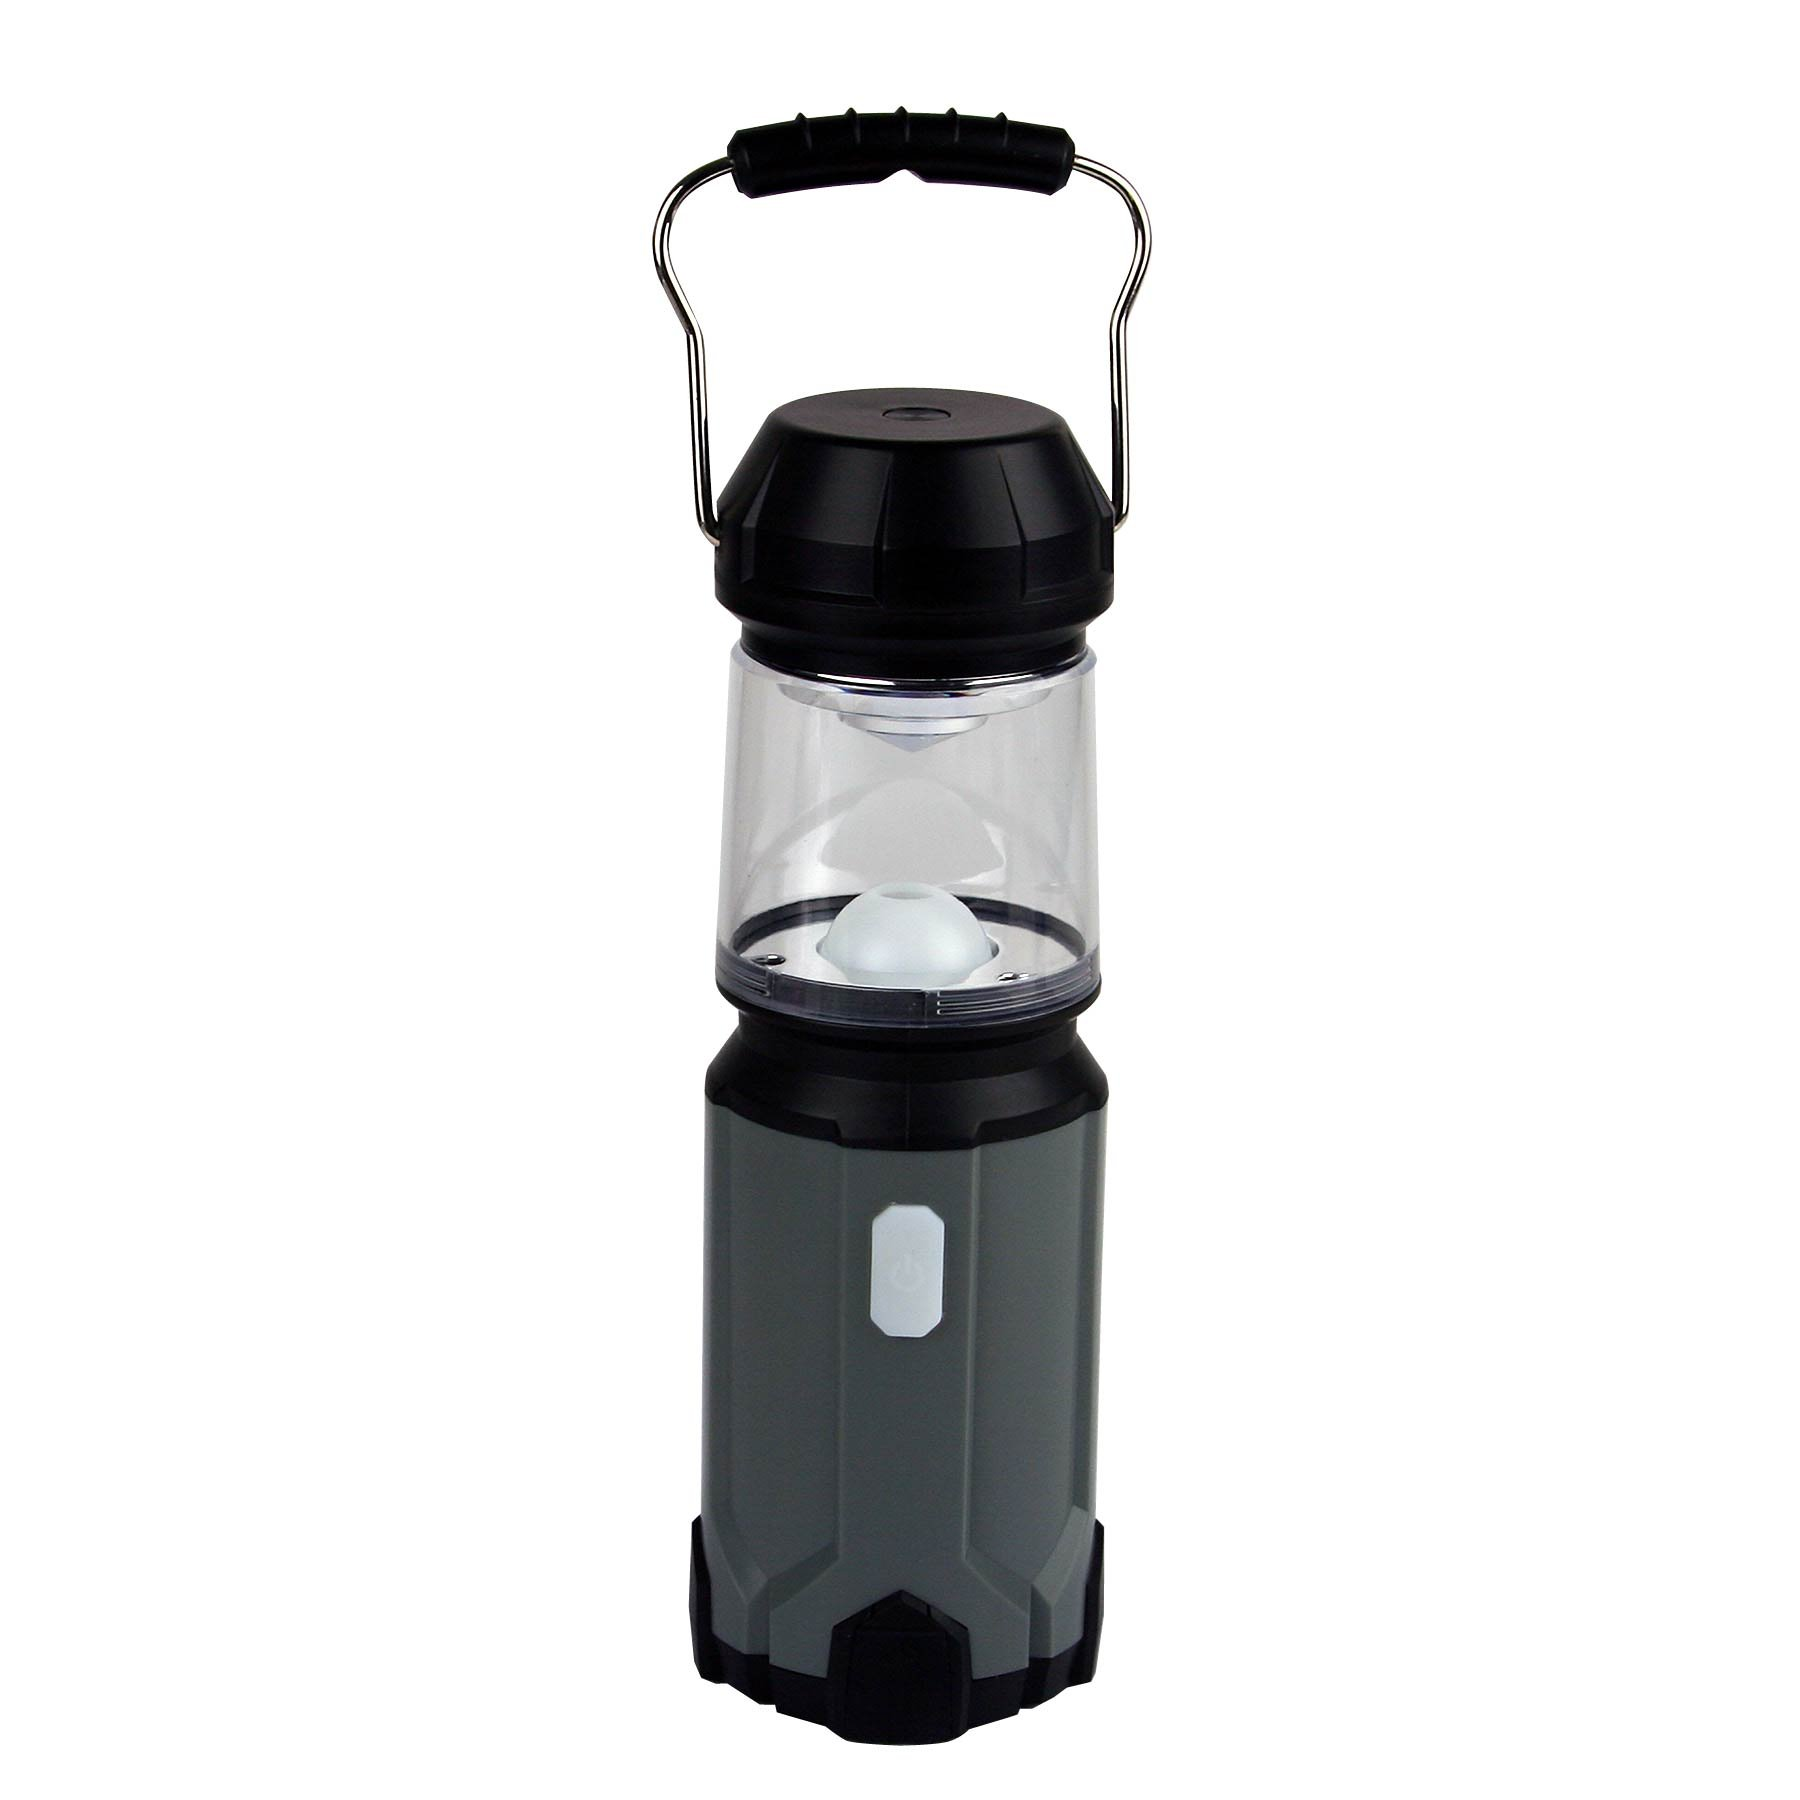 Dorcy 41-1091 Rechargeable Power Bank Lantern with USB Input/Output